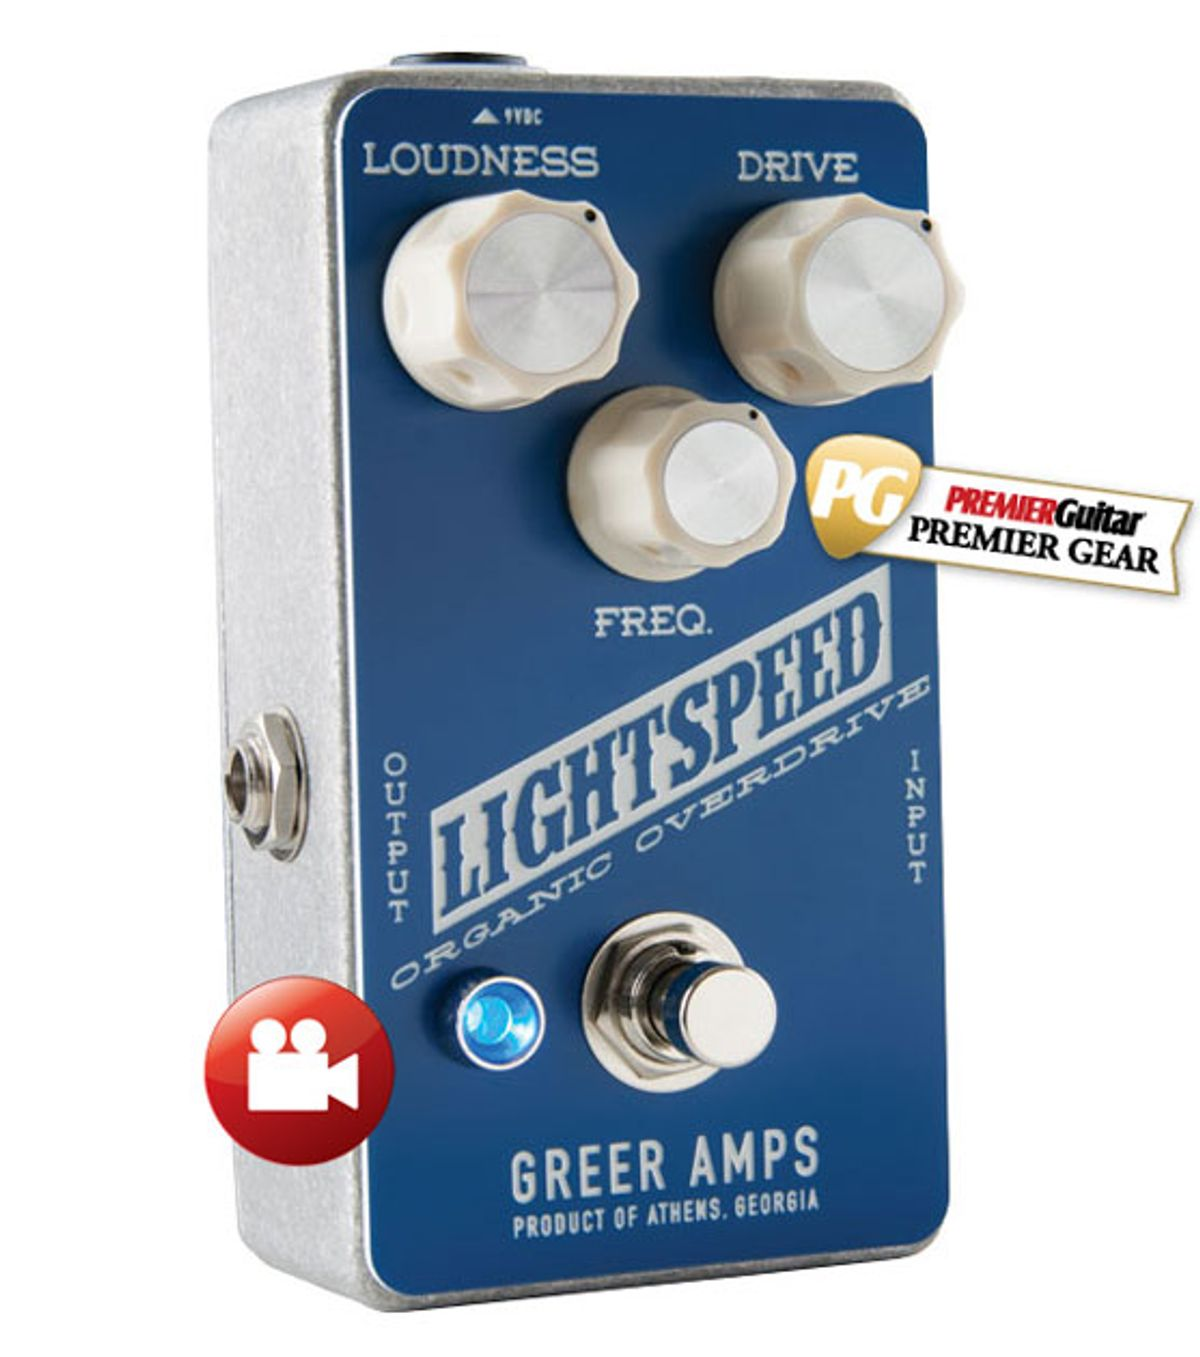 Greer Amps Lightspeed Organic Overdrive Review